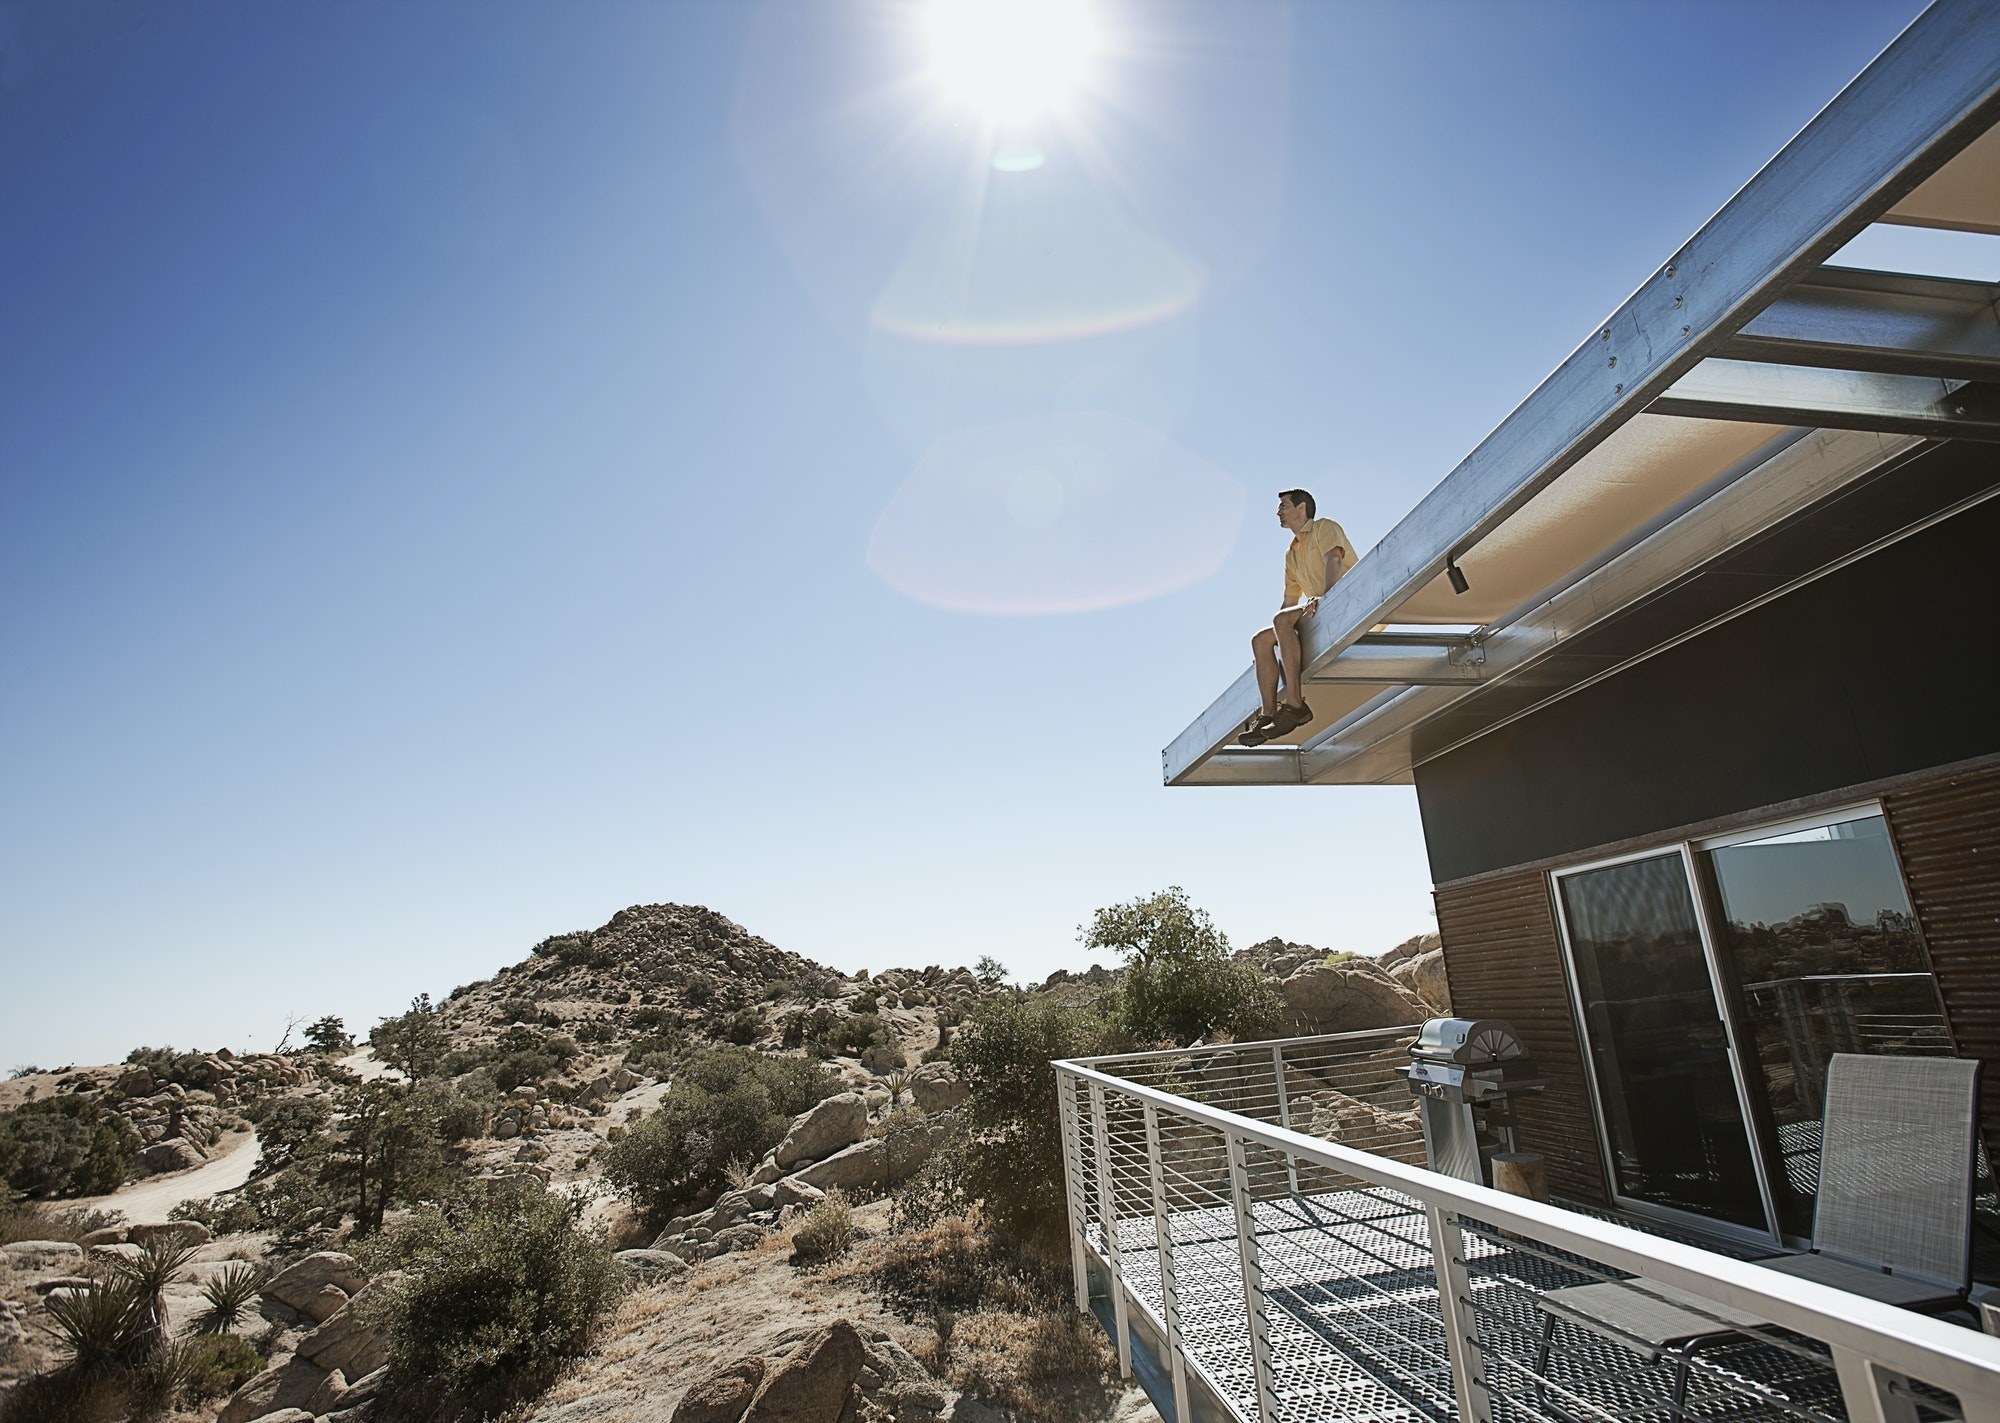 A man sitting on the roof overhang of an eco home in the desert landscape.